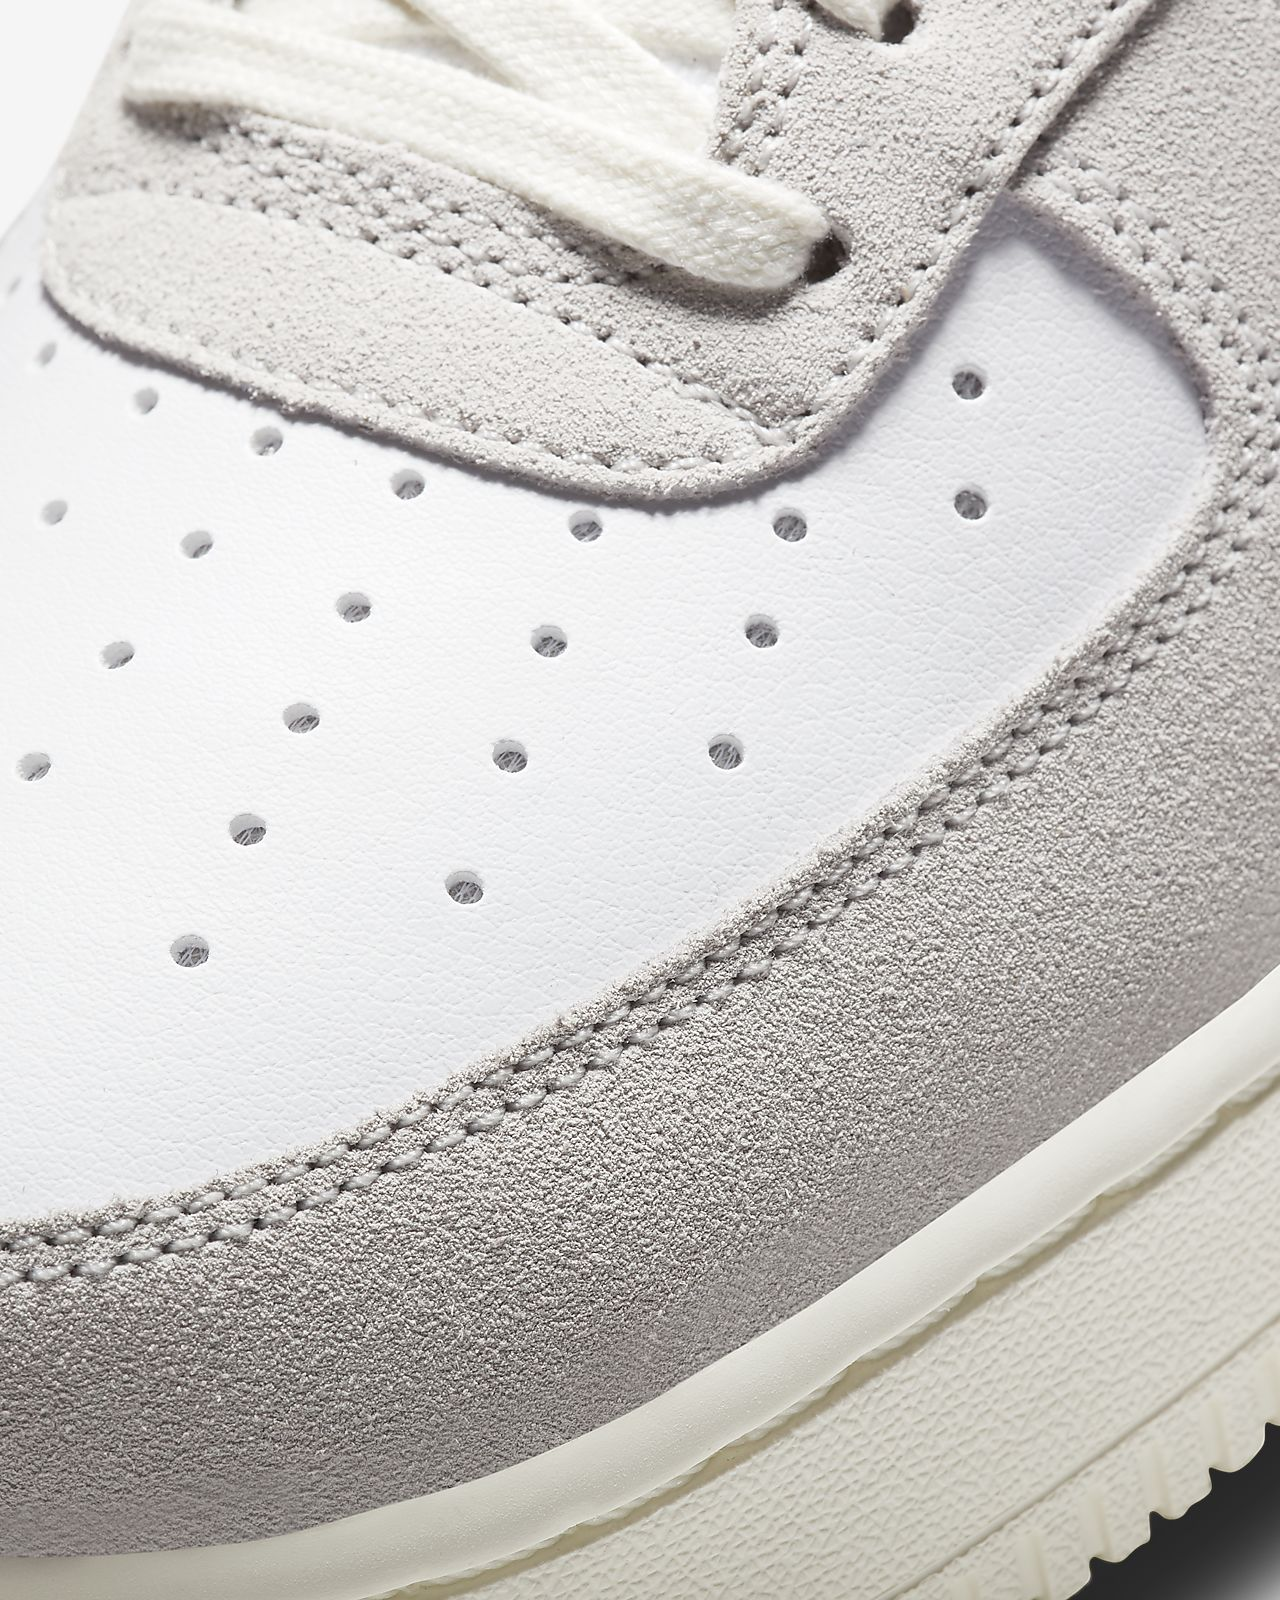 Nike Air Force 1 Low Platinum Tint CW7584 100 Release Date SBD